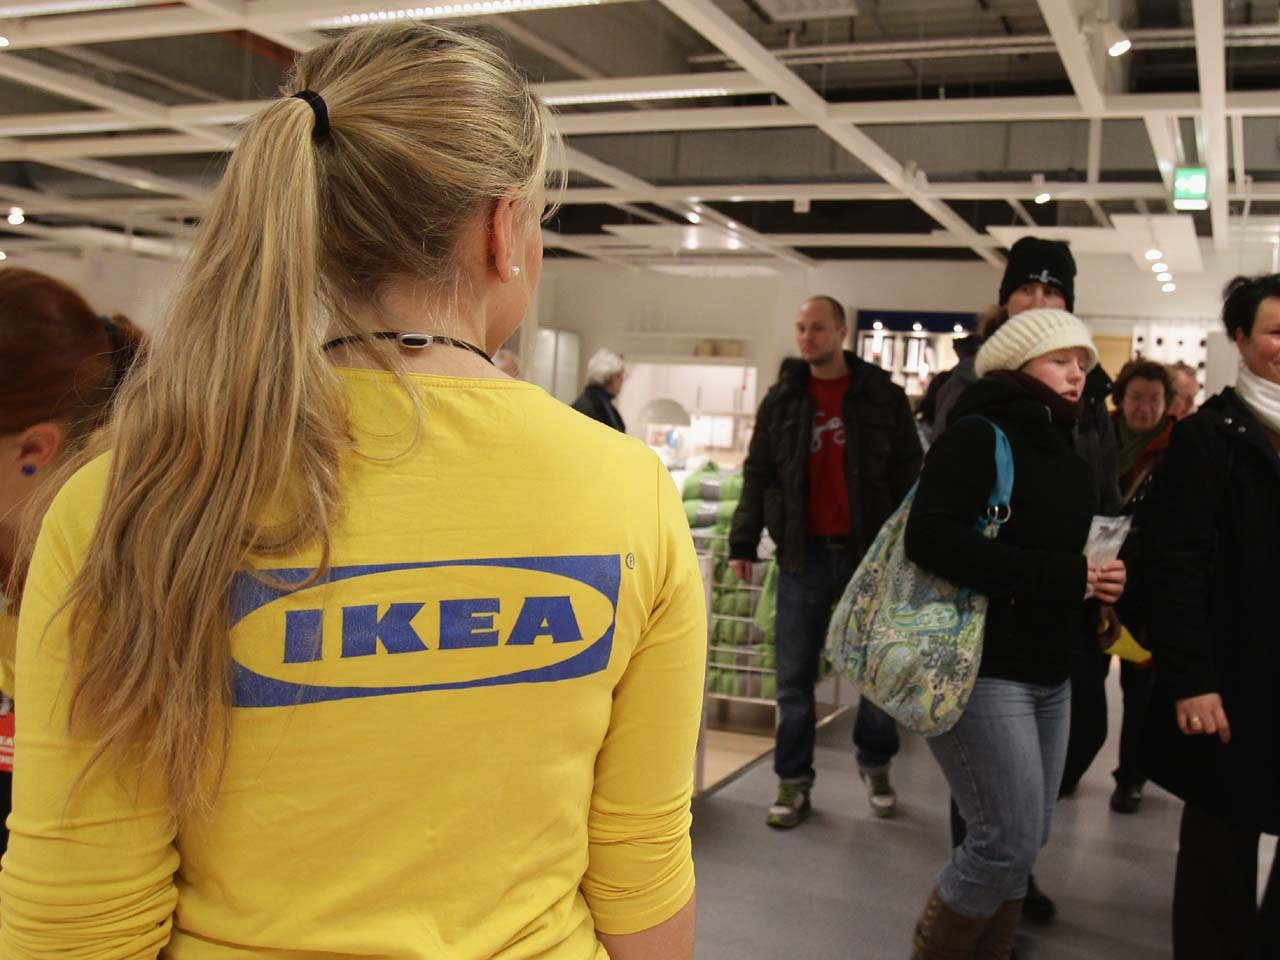 ikea to invest 1 2b in india to open 25 stores cbs news. Black Bedroom Furniture Sets. Home Design Ideas